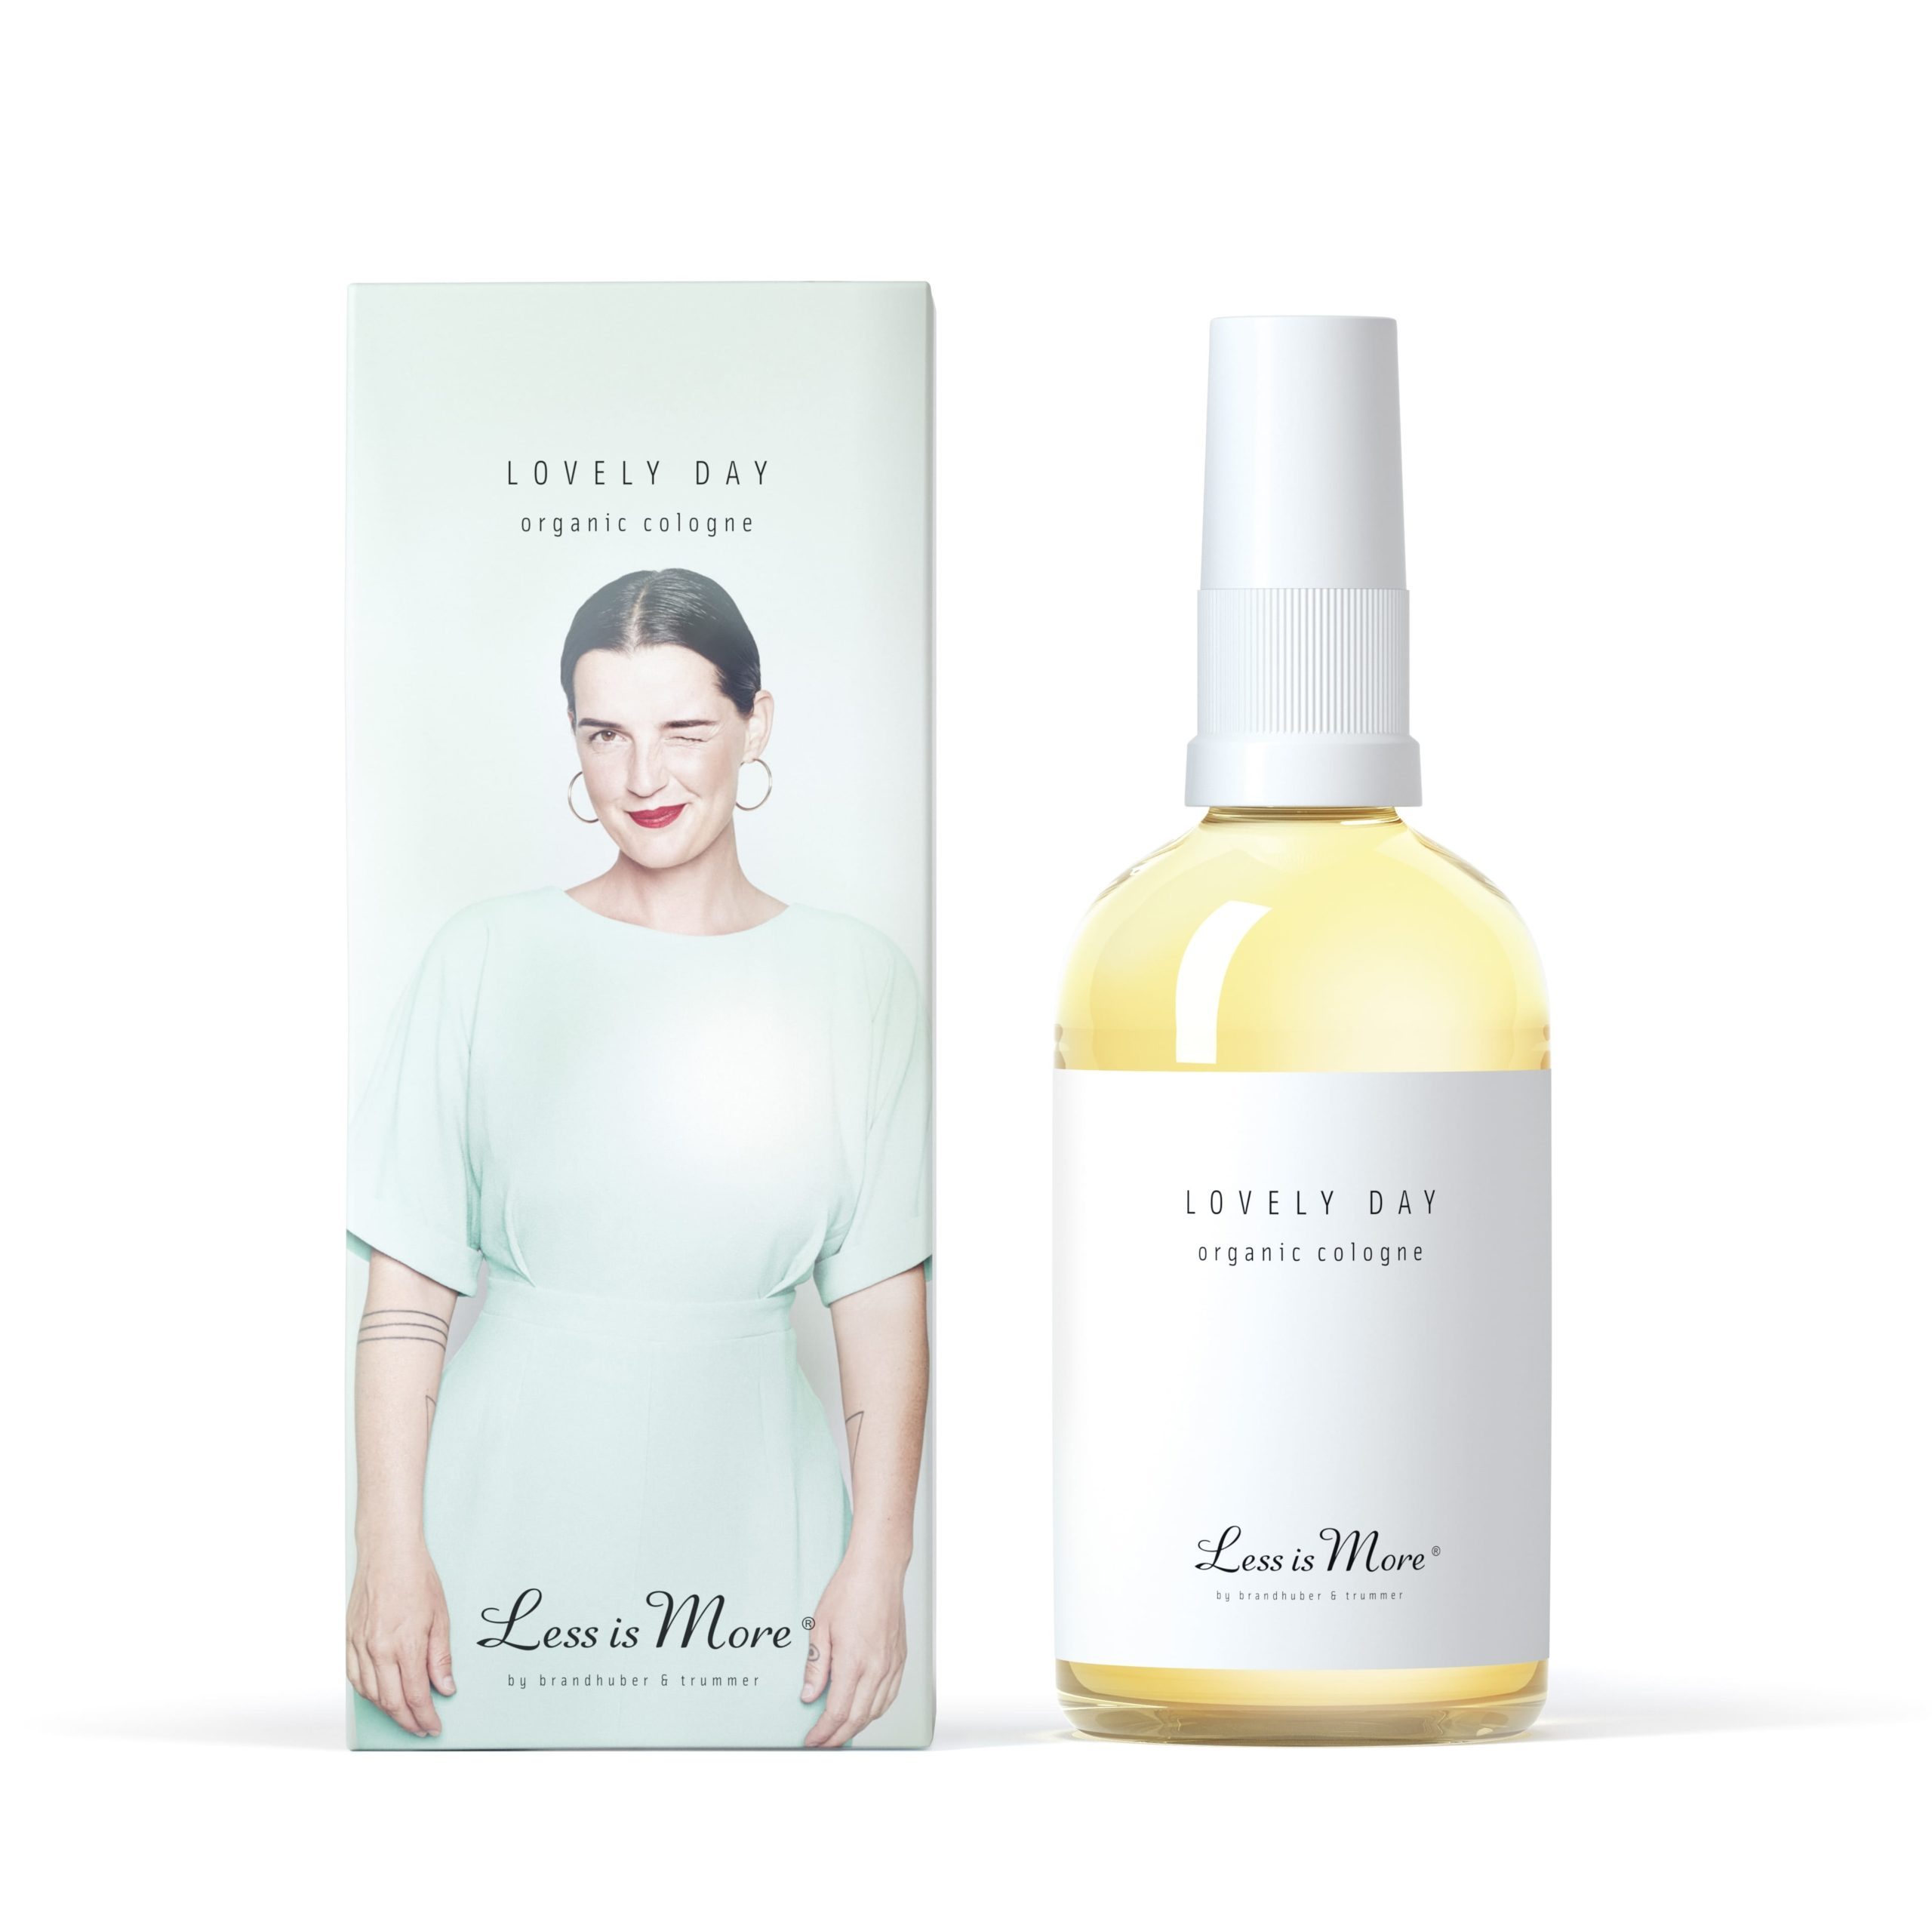 Less_is_More_Lovelyday_Organic_Cologne